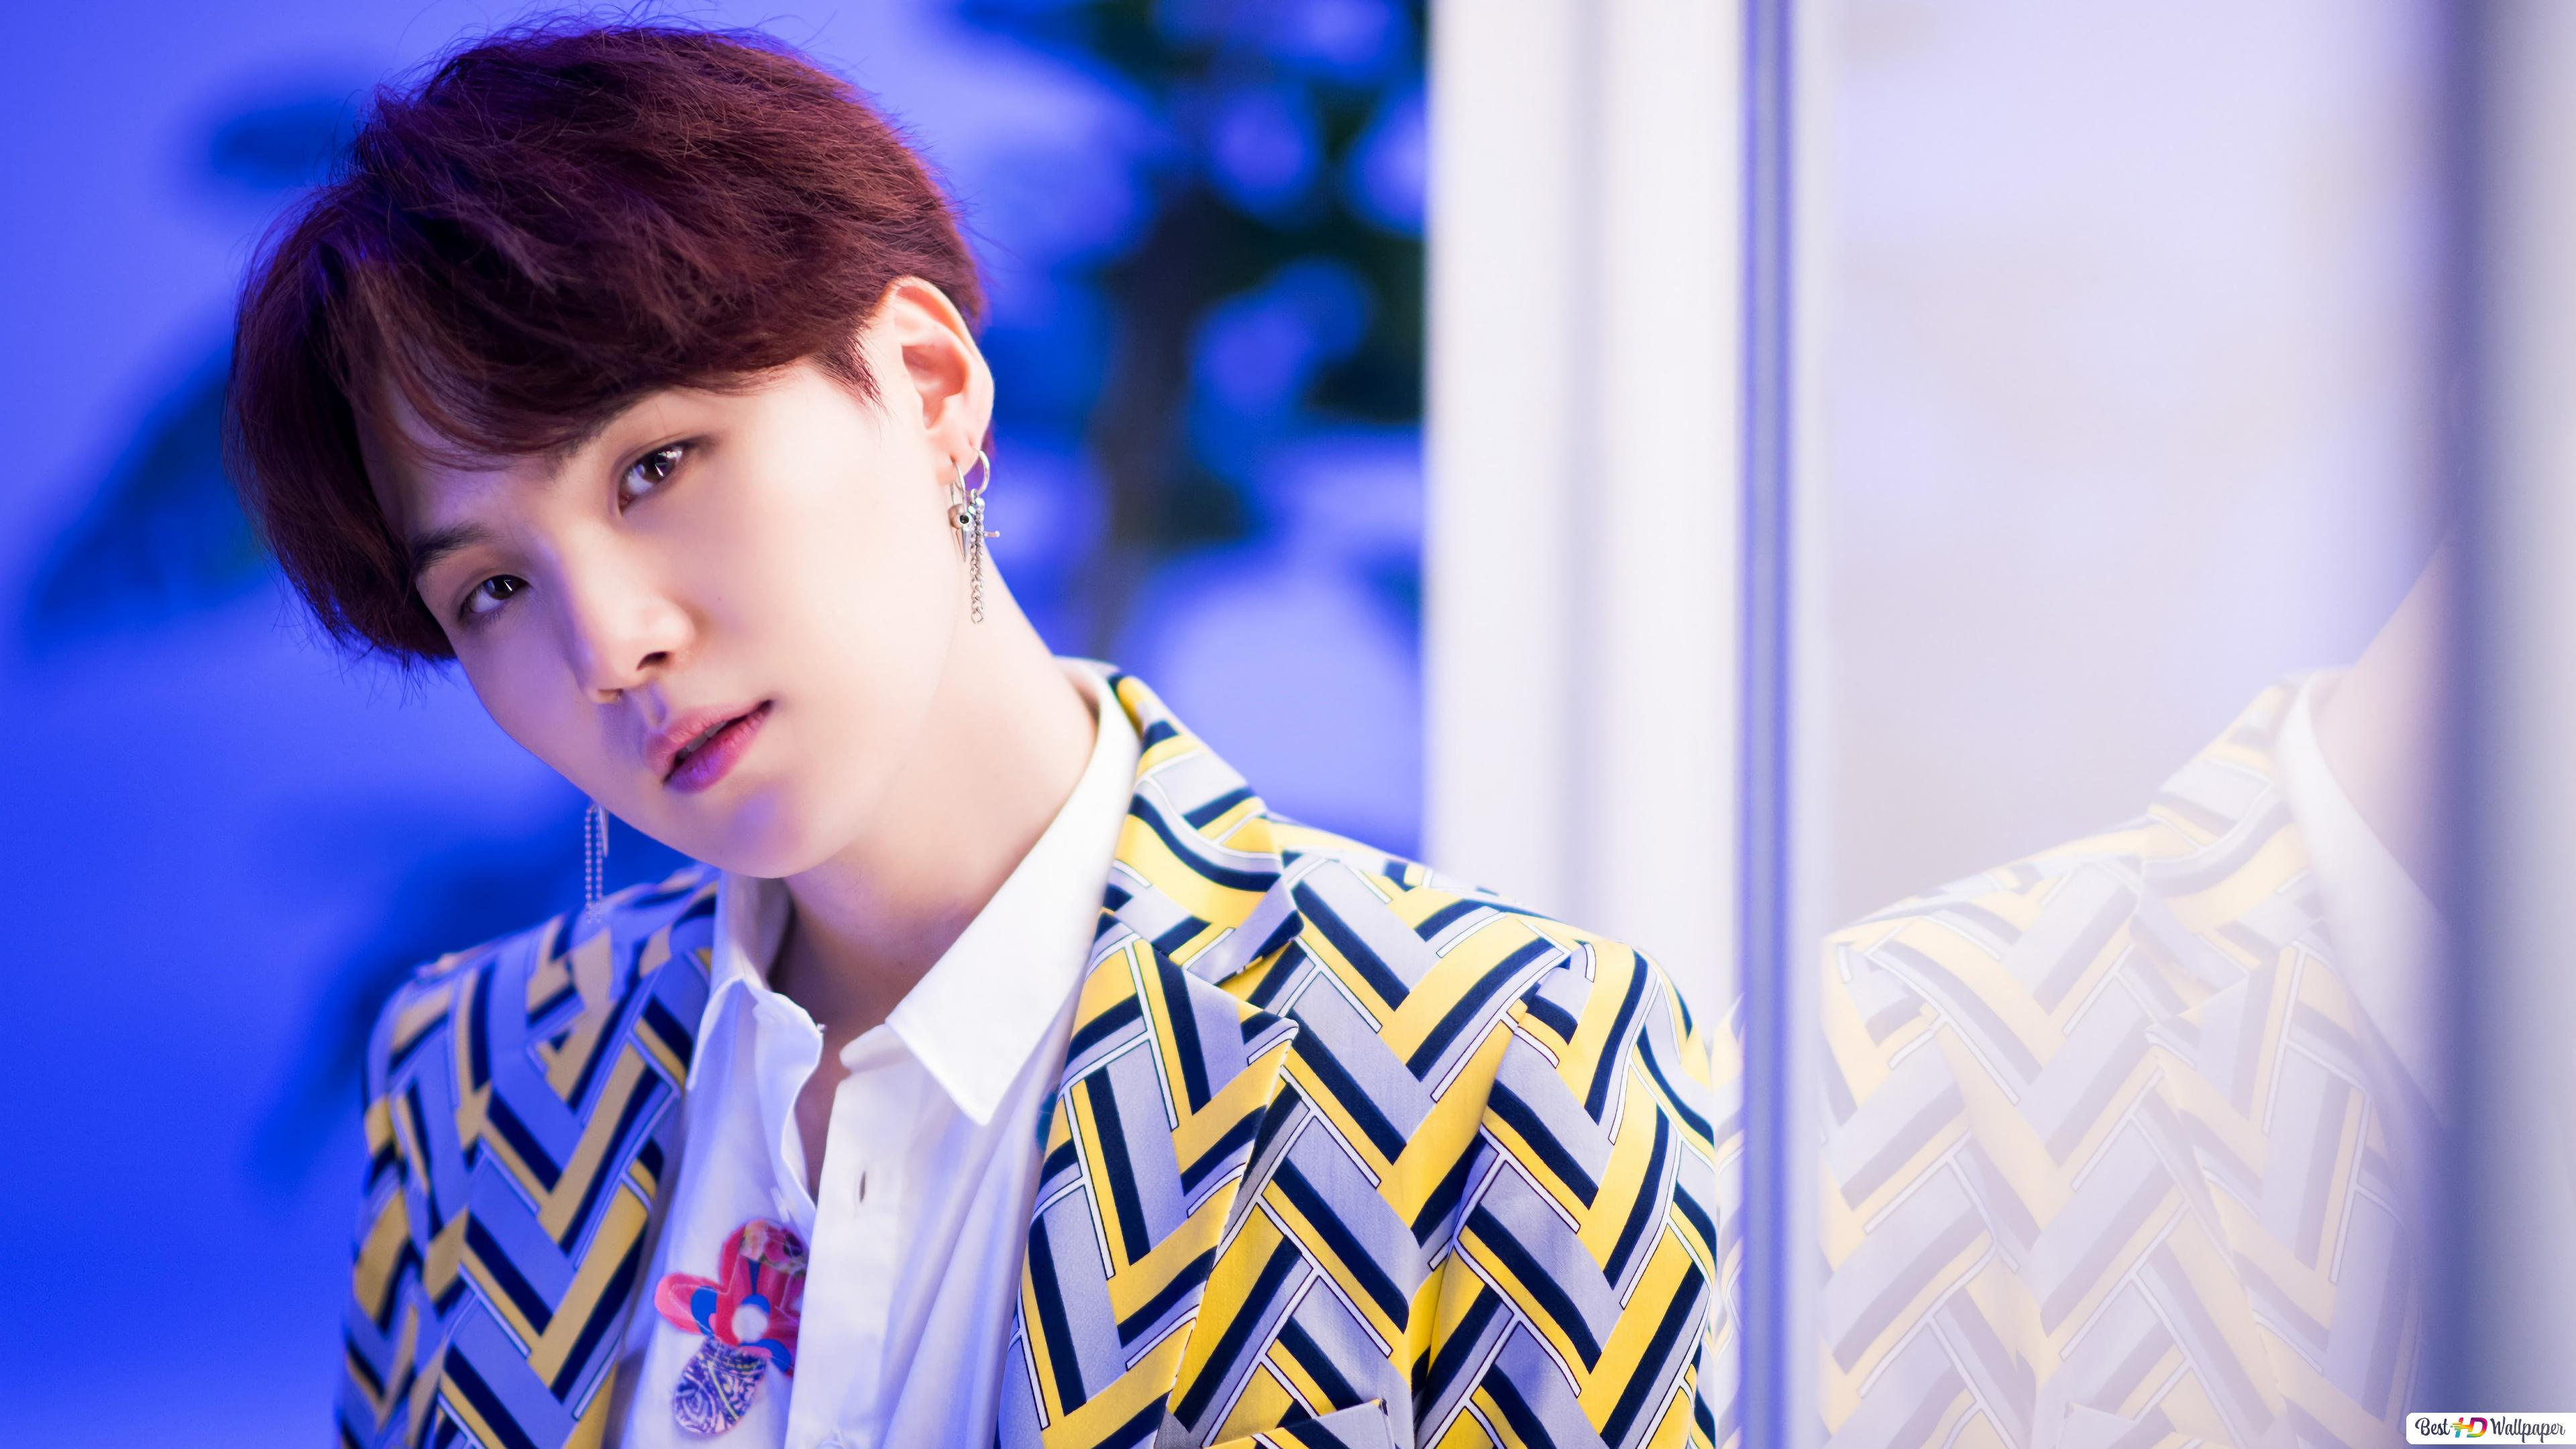 suga from bts k pop boys band wallpaper 3840x2160 53617 54